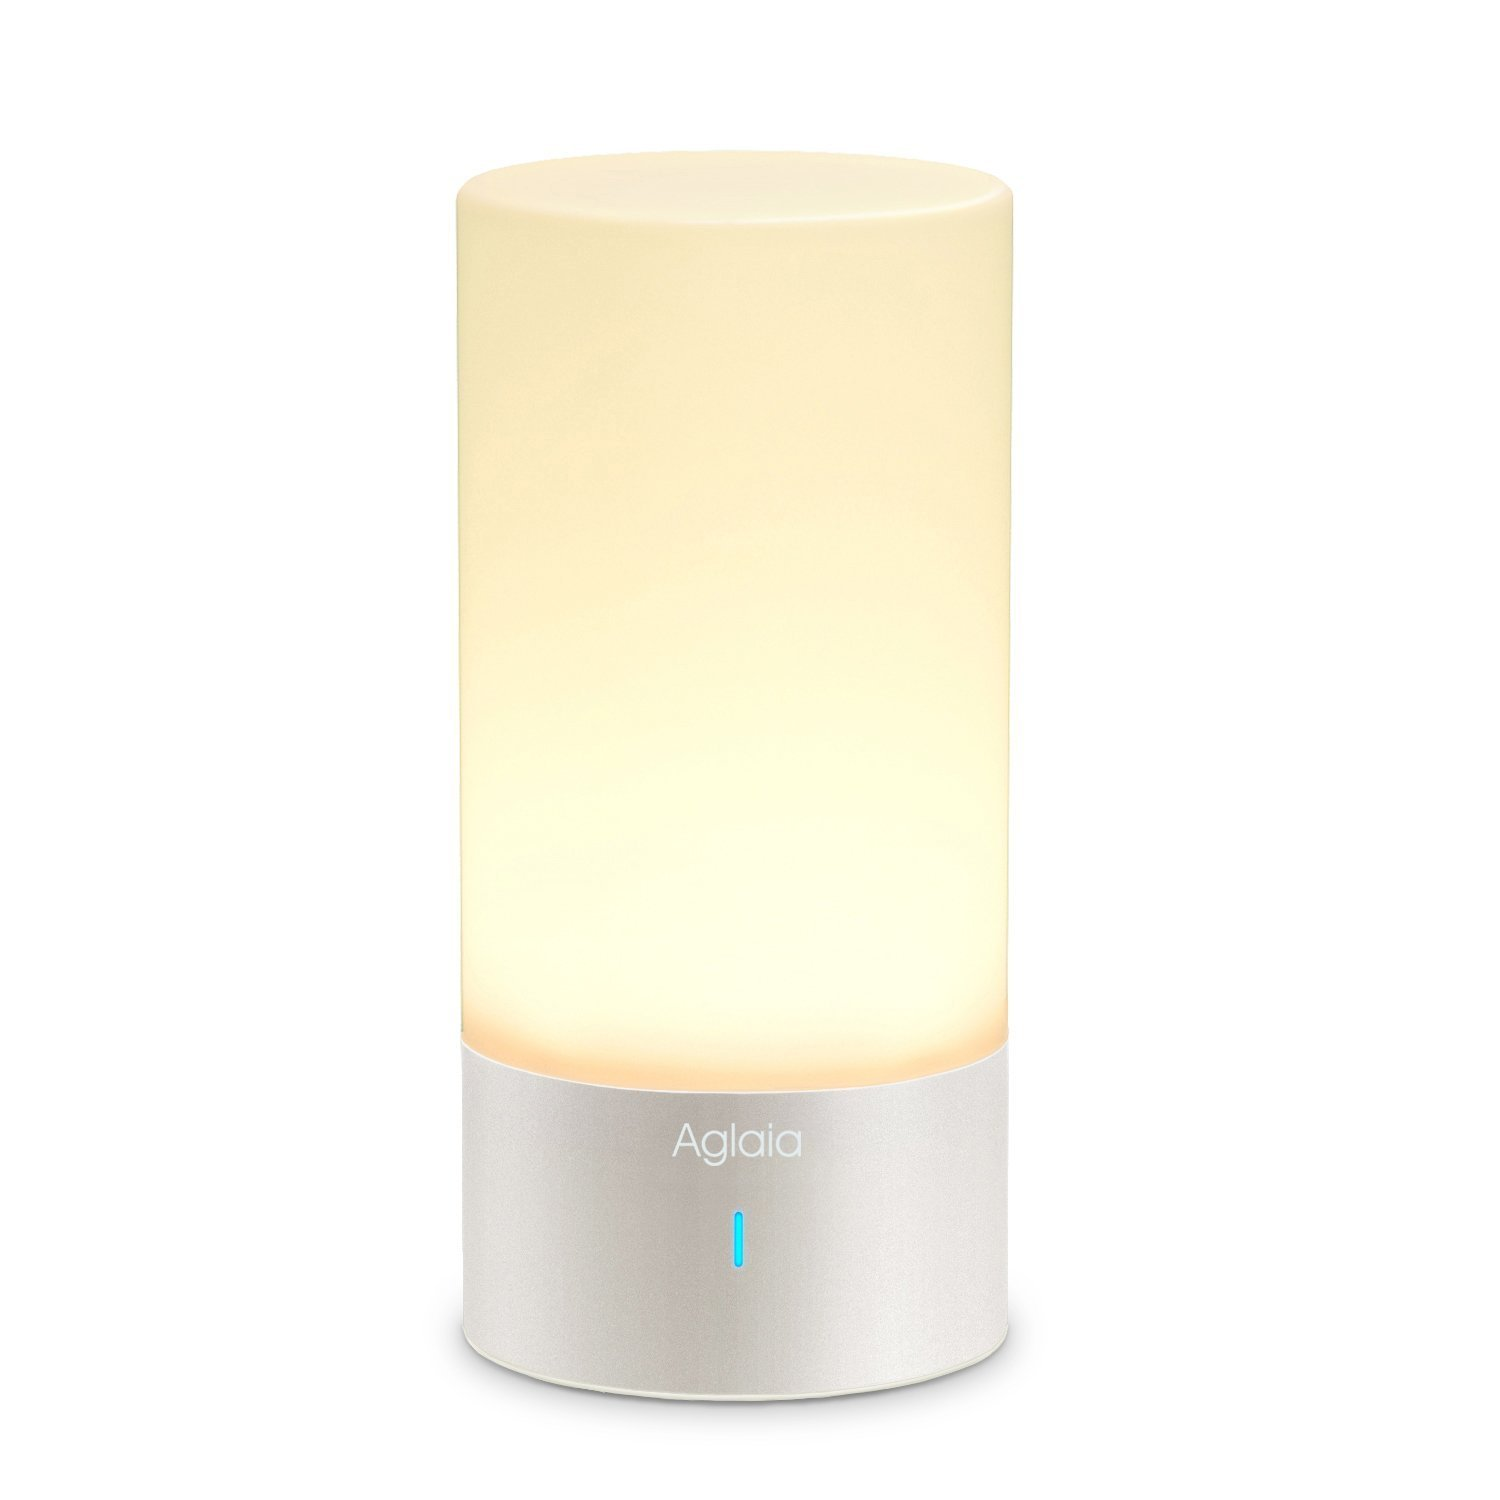 Bedside Lamp,Touch Sensor Table Lamp Aglaia Dimmable Mood Lamp with Warm White and 256 Color Changing RGB for Bedrooms